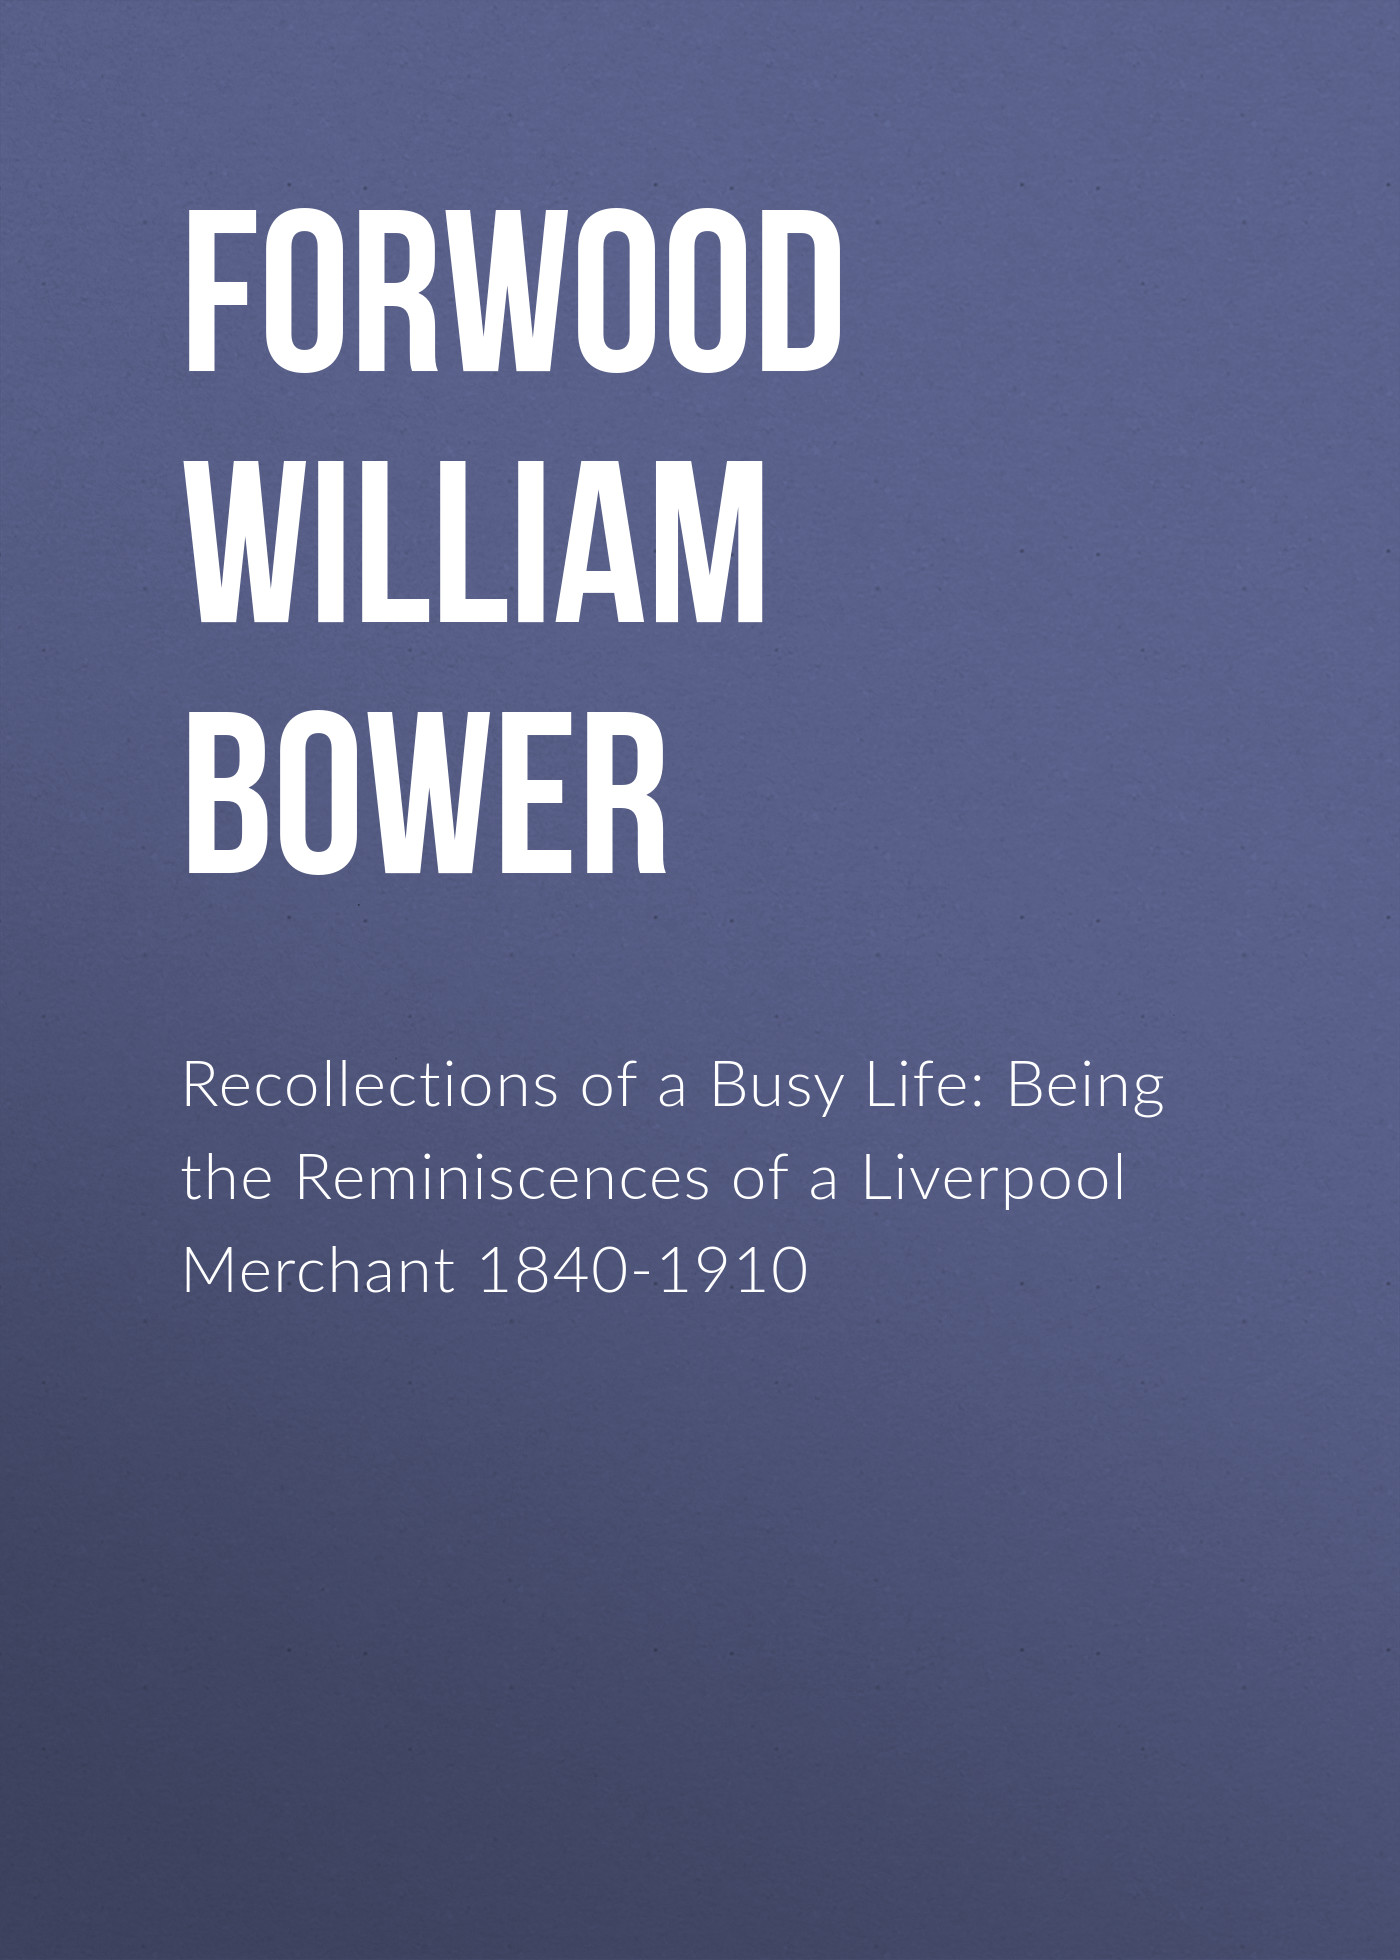 Forwood William Bower Recollections of a Busy Life: Being the Reminiscences of a Liverpool Merchant 1840-1910 a dubuque reminiscences d operas italiens